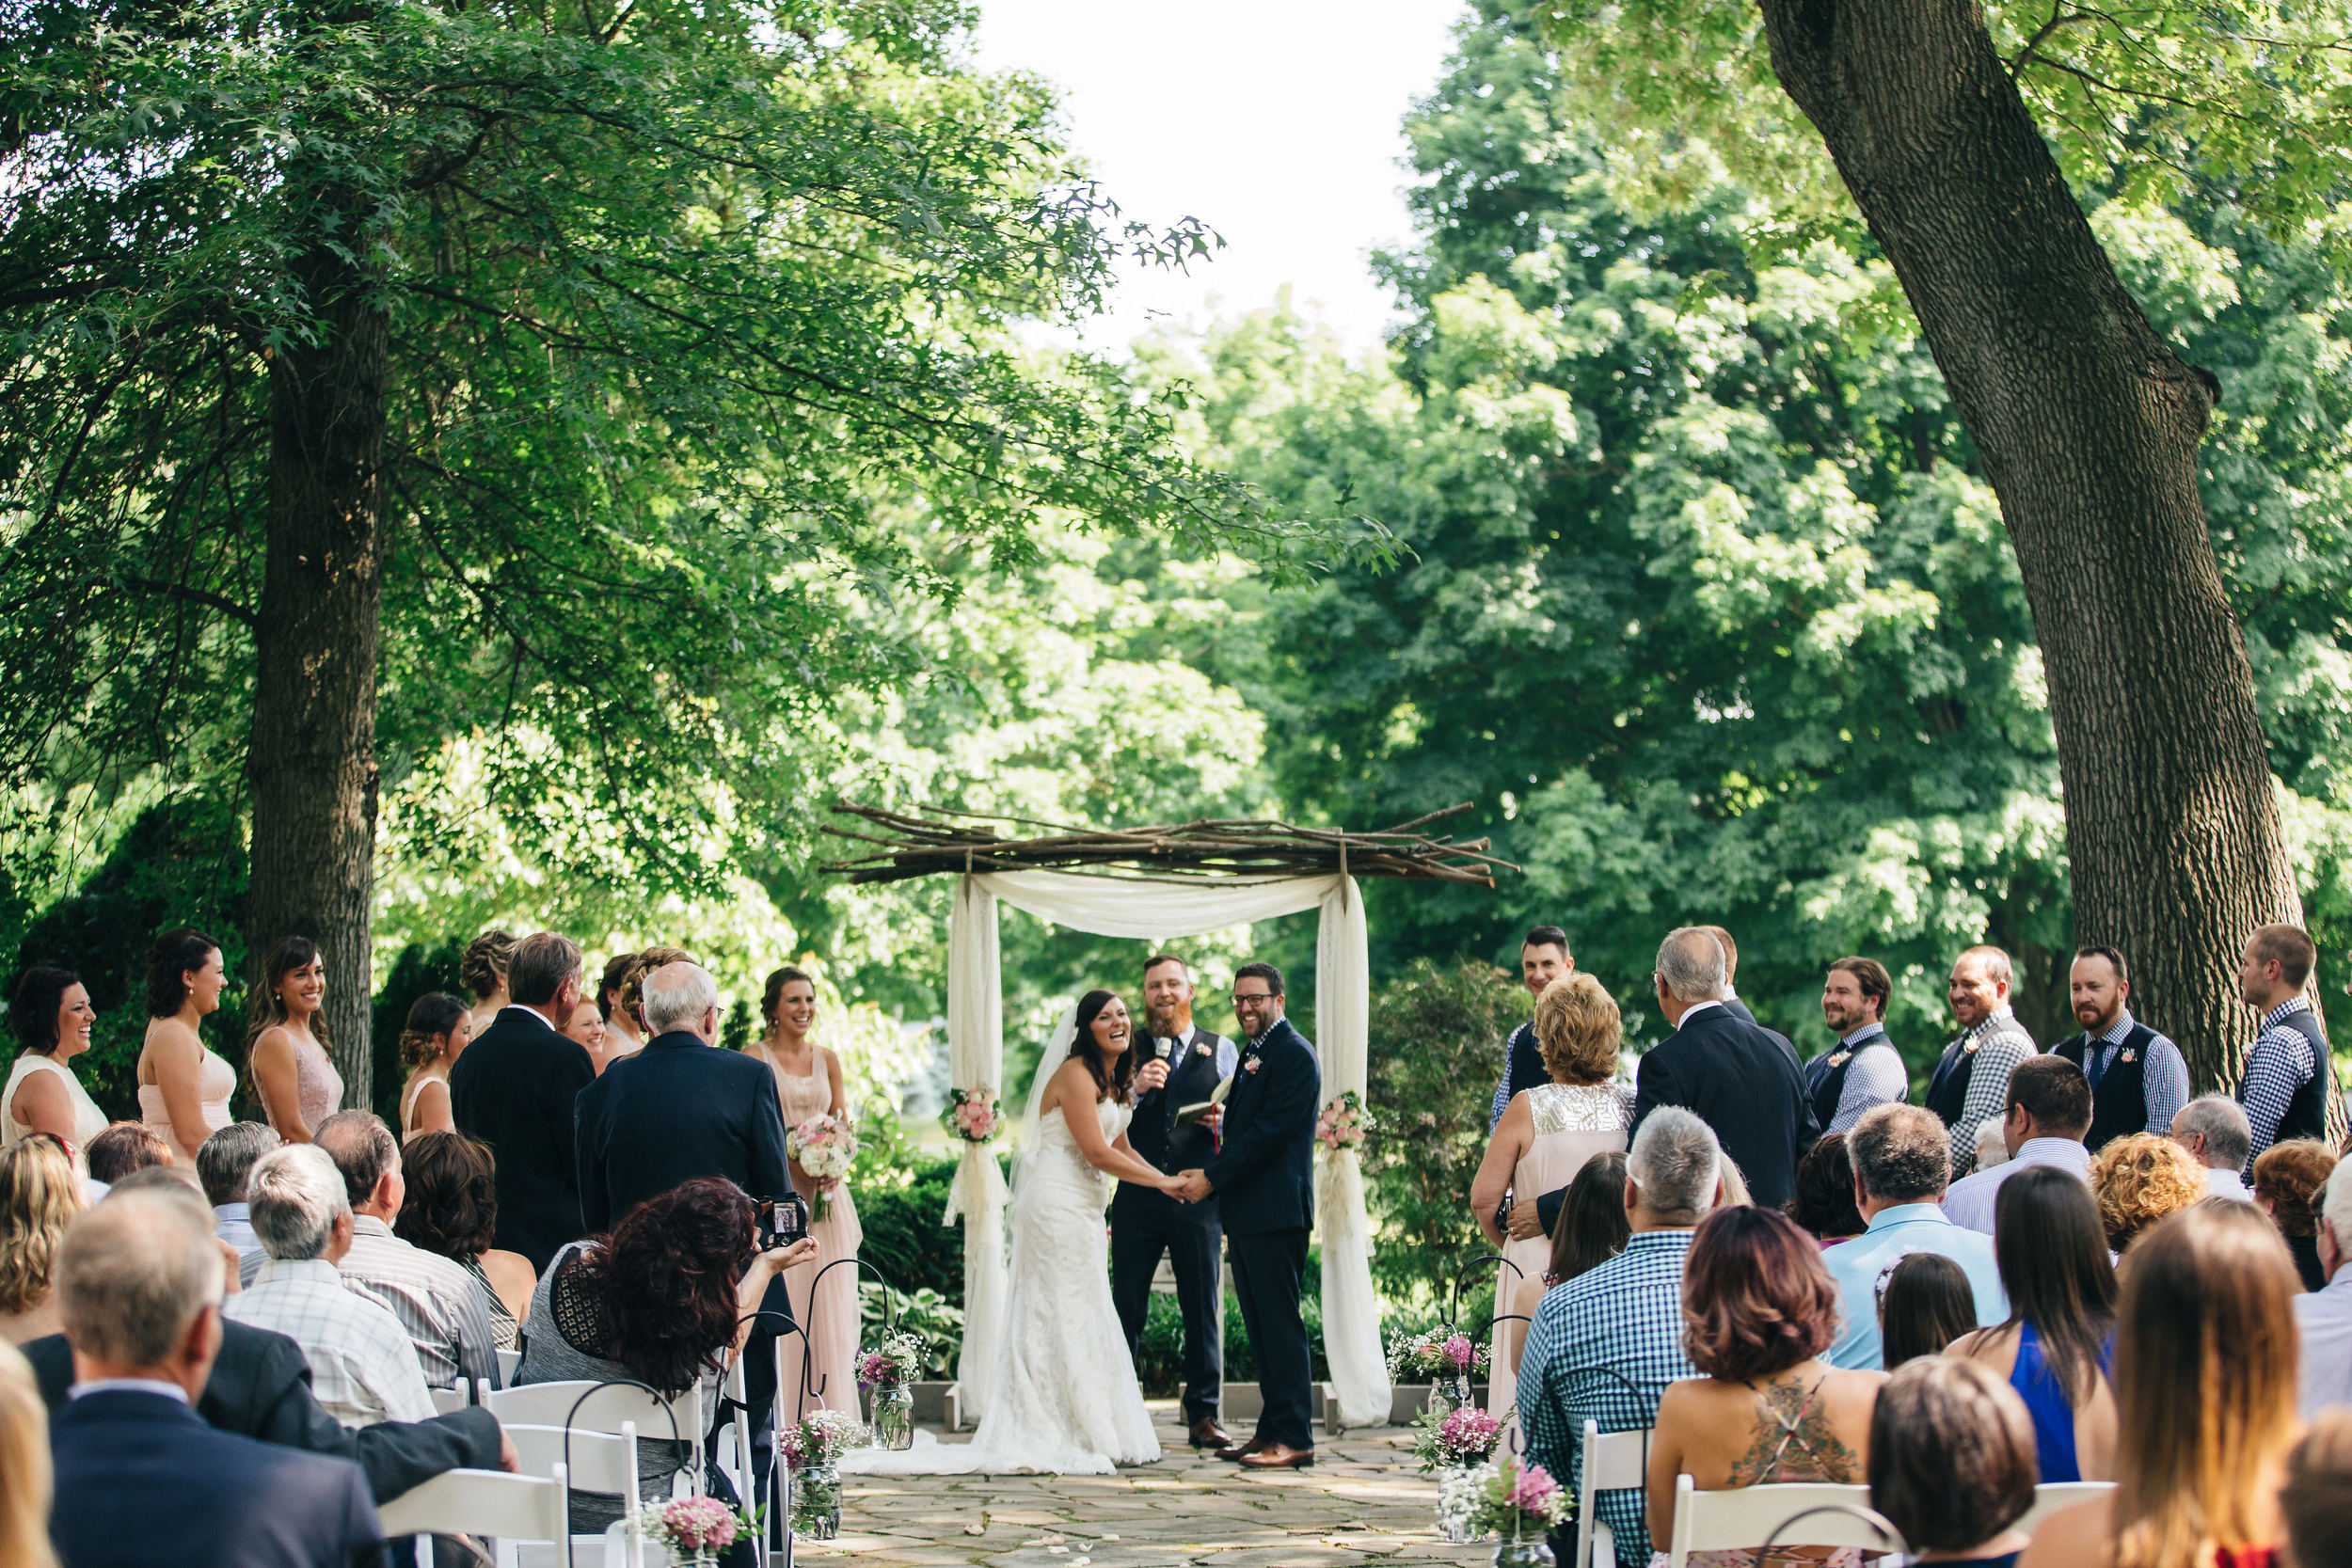 Bride and groom during ceremony at Hoover Park in Canton, Ohio.